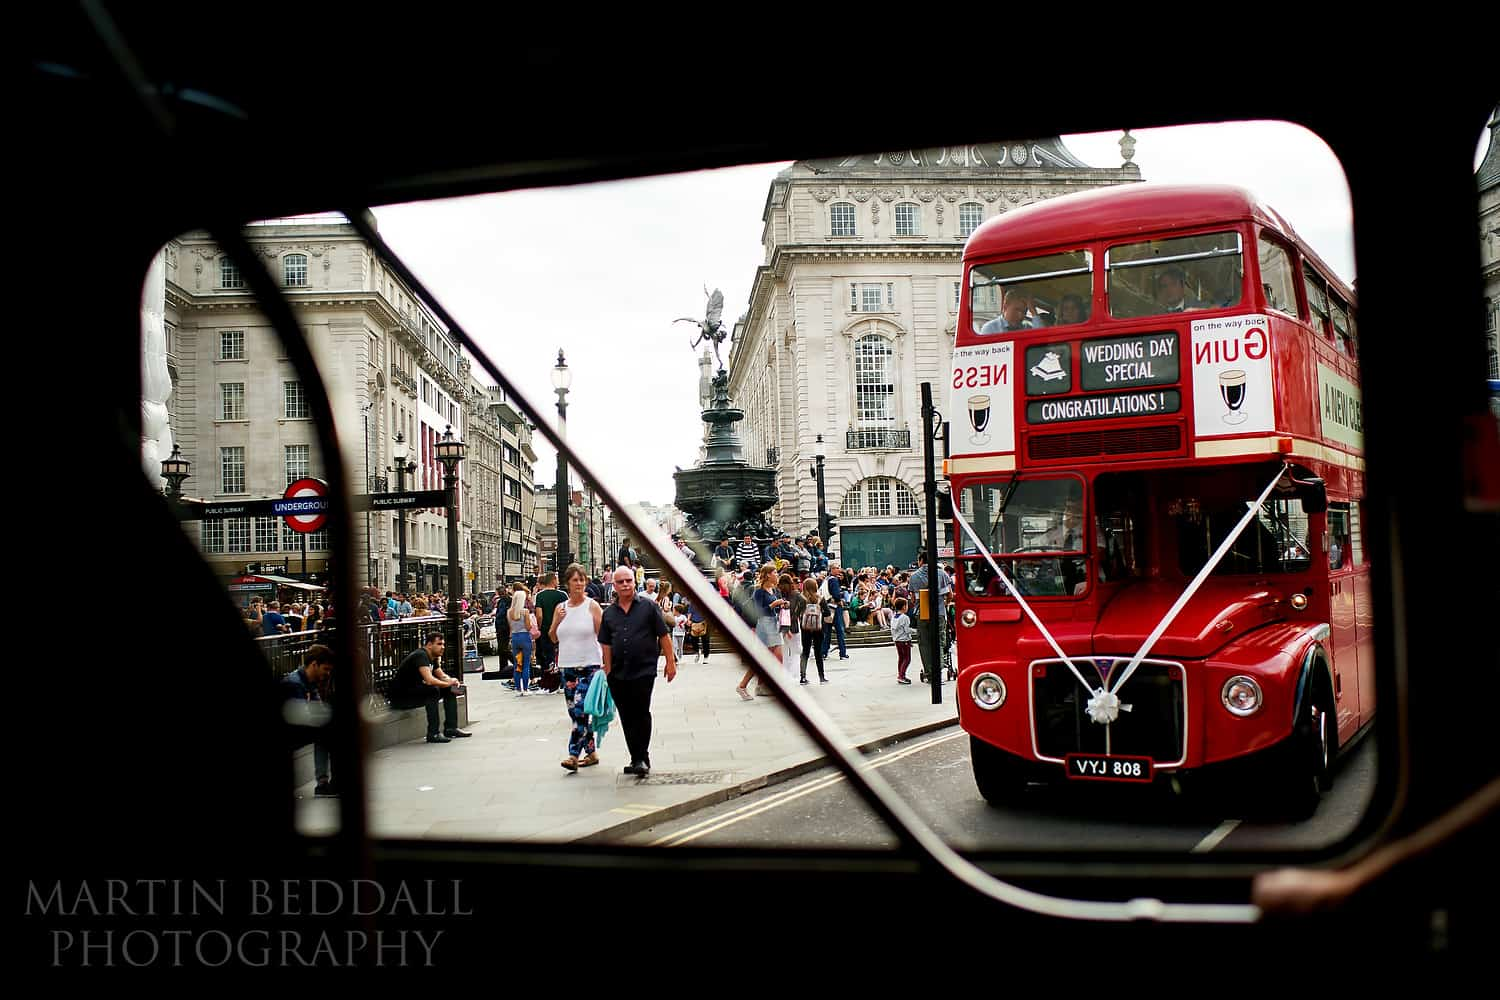 Wedding buses pass through Piccadilly Circus